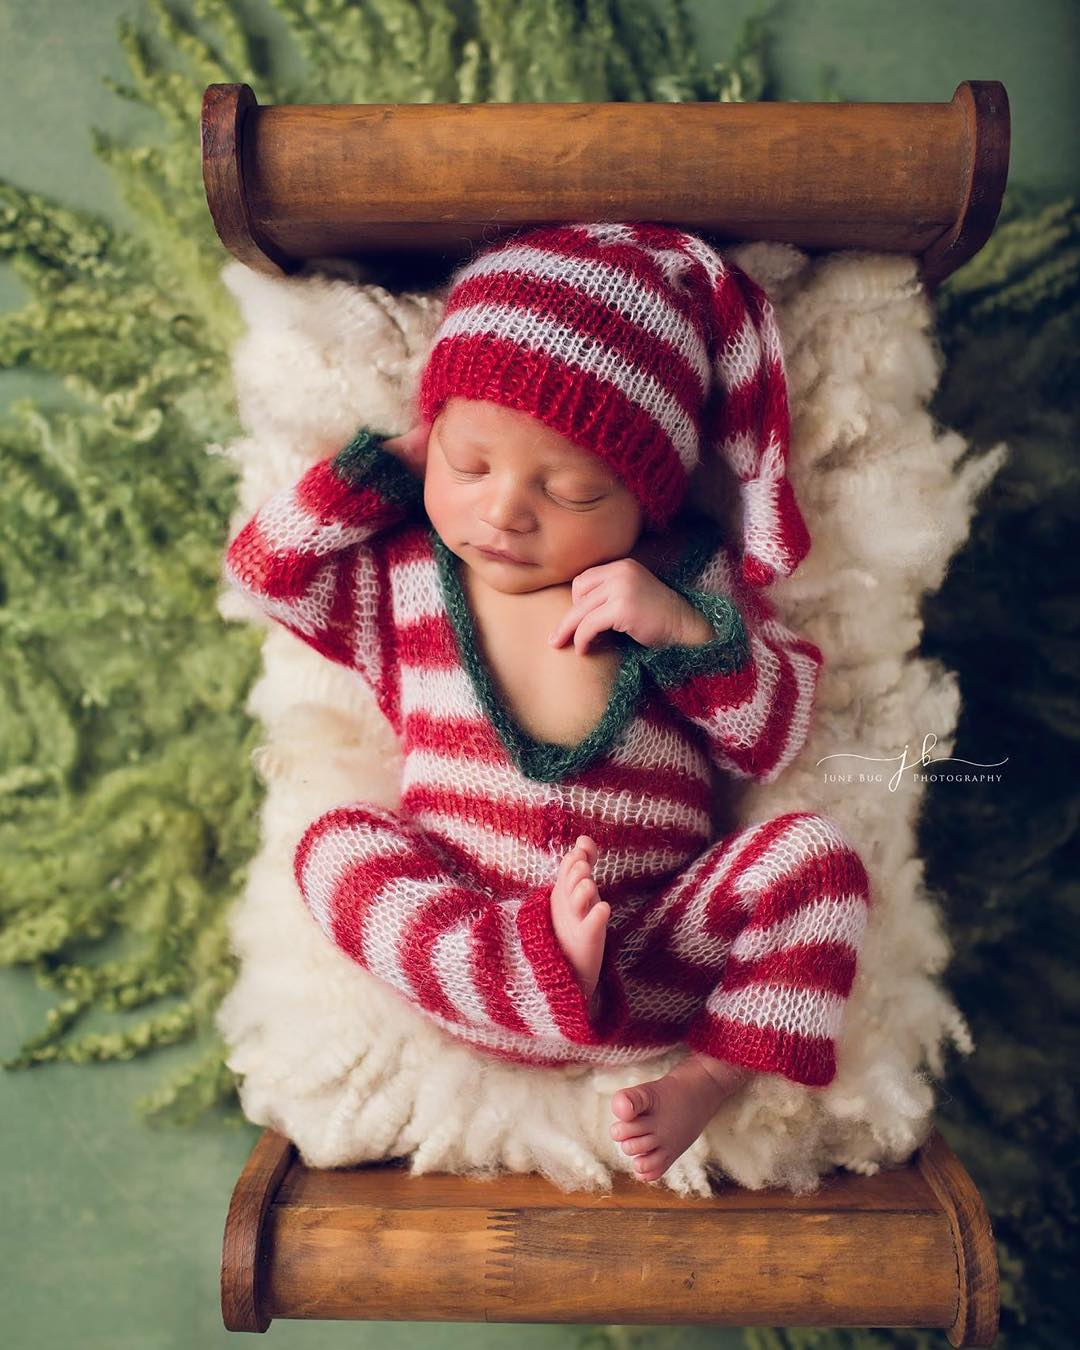 These 17 Newborns Wearing Knitted Christmas Outfits Will Fill Your ...